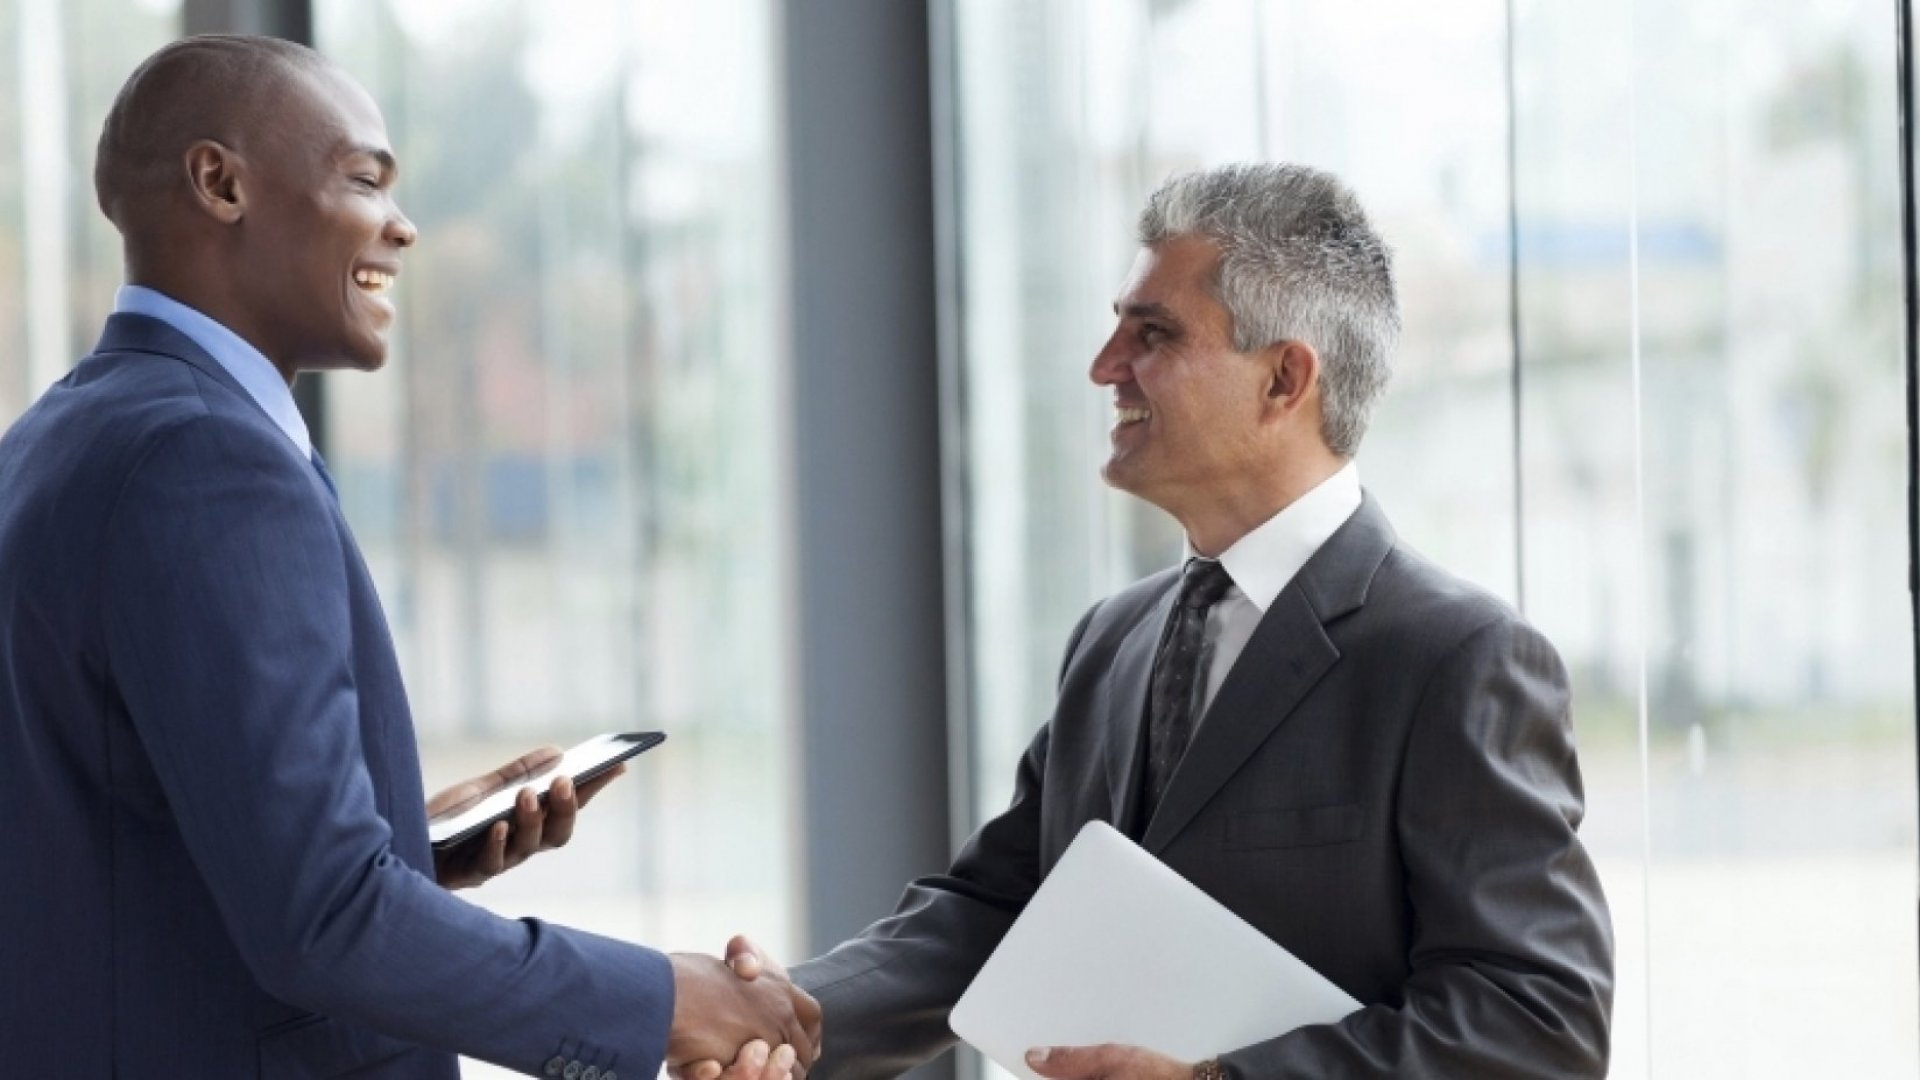 6 Ways Successful People Make a Good First Impression